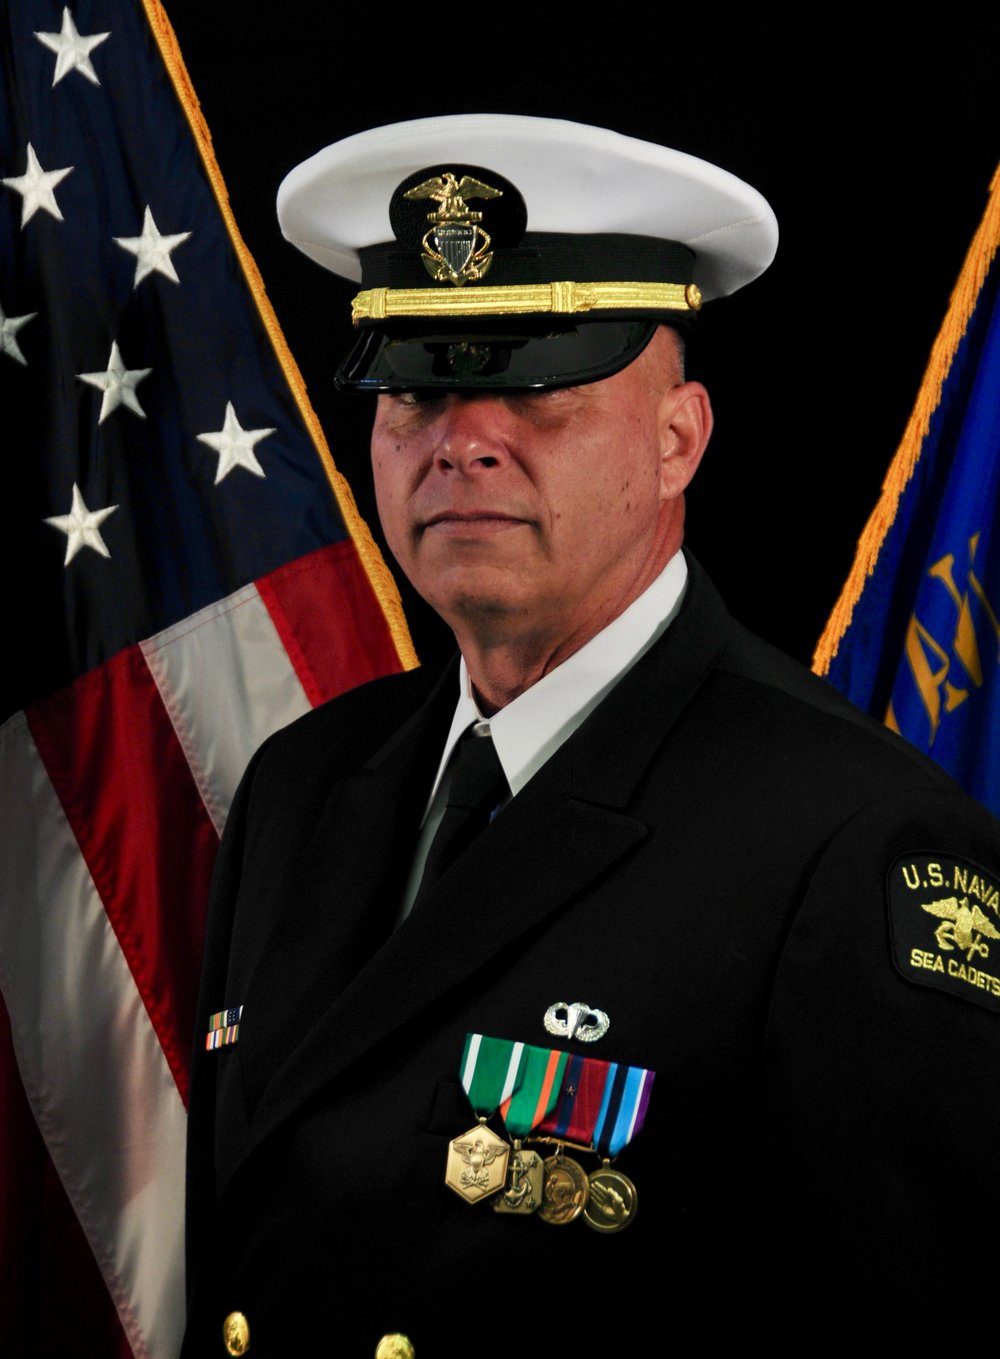 LTJG. Spencer Boyce Commanding Officer LTJG Boyce Joined the unit in 2016 and was appointed the Commanding Officer in 2017.  He has one son in the program and recently retired as a Captain with the California Highway Patrol after 29 plus years serving in a variety of assignments.  He served eight years as a US Marine Corps Sergeant and 2 years as Petty Officer 2nd Class in the US Coast Guard reserve.  LTJG Boyce holds a Bachelor of Science degree in Management, a Masters of Science degree in Criminal Justice and is a graduate of the California POST Command College.  He is a prior Sea Cadet attaining the rank of Petty Officer 2ndClass.